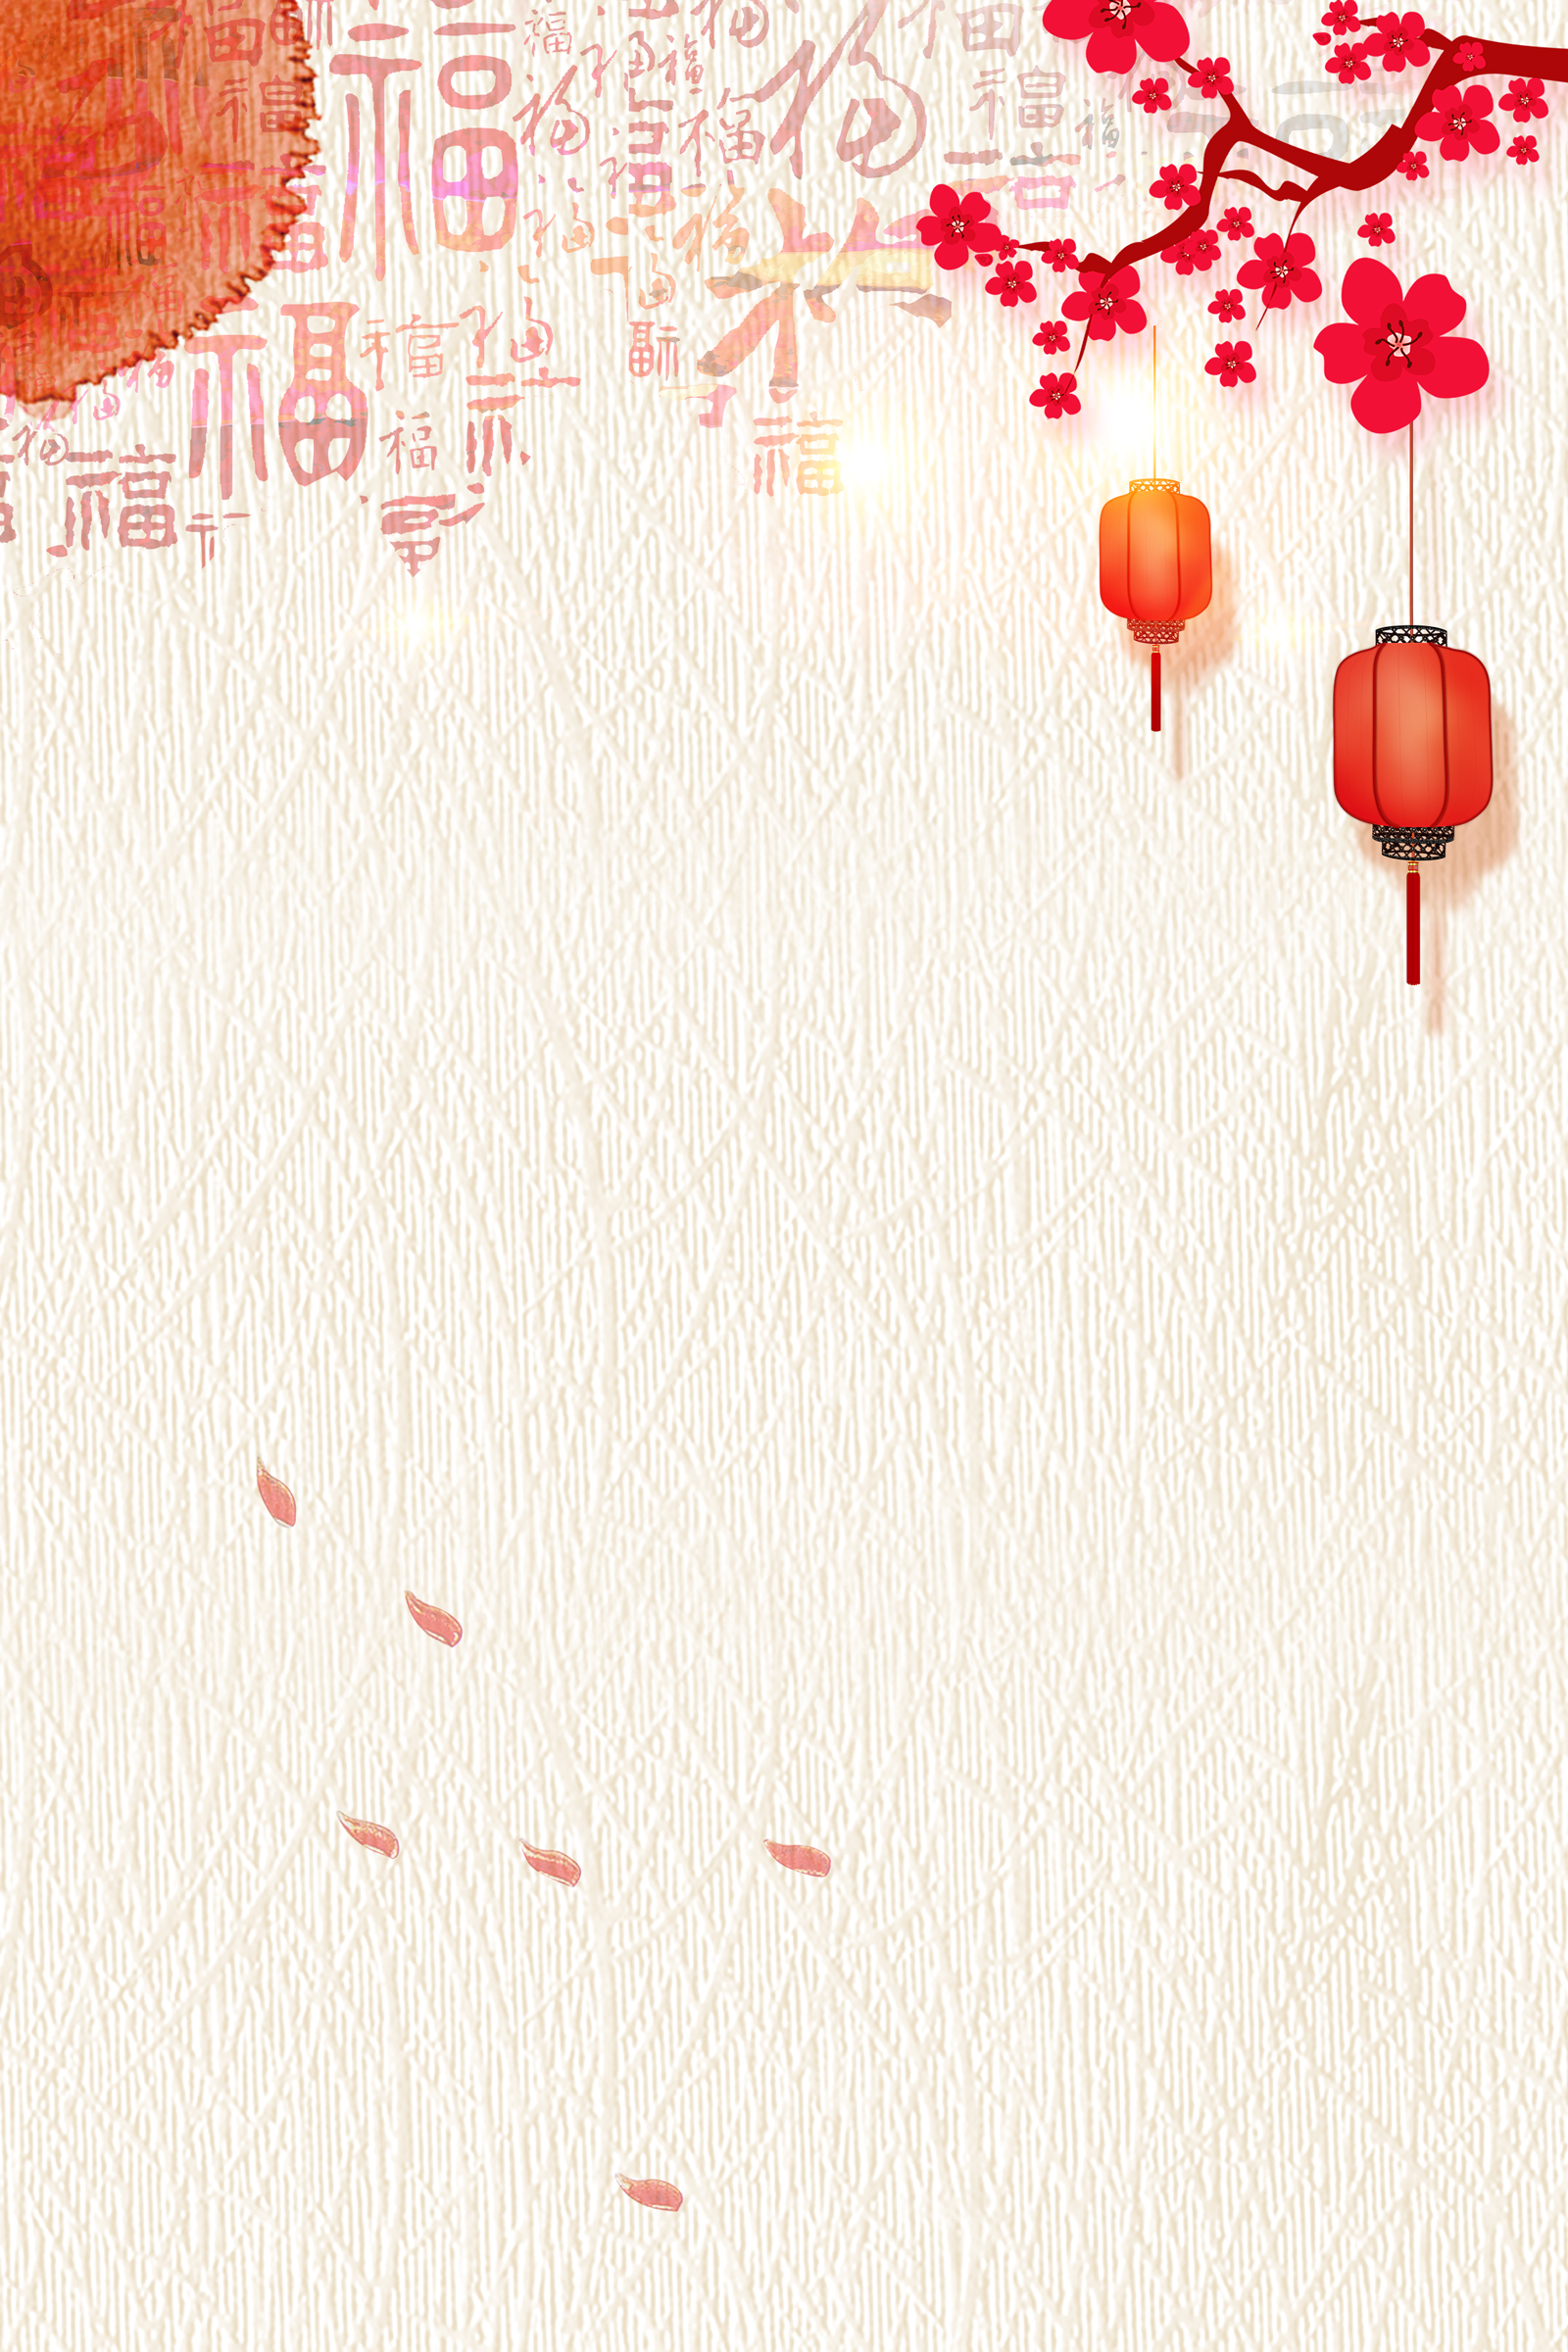 Rough paper texture - Chinese cultural elements background picture poster PSD Free Download